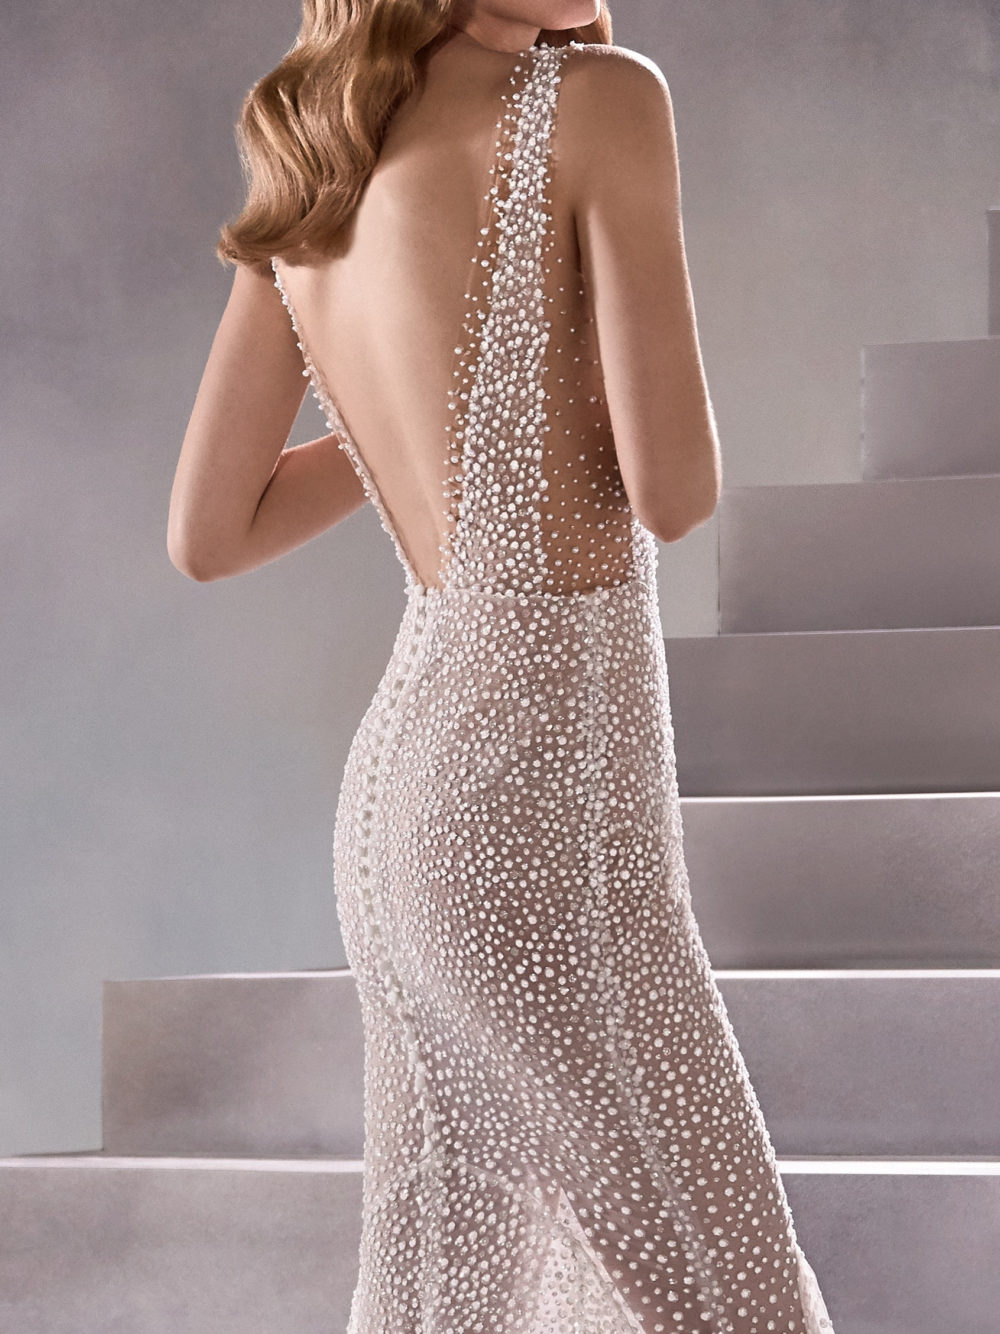 Pronovias Constellation Wedding Gown Dress 2020 Atelier Collection back detail